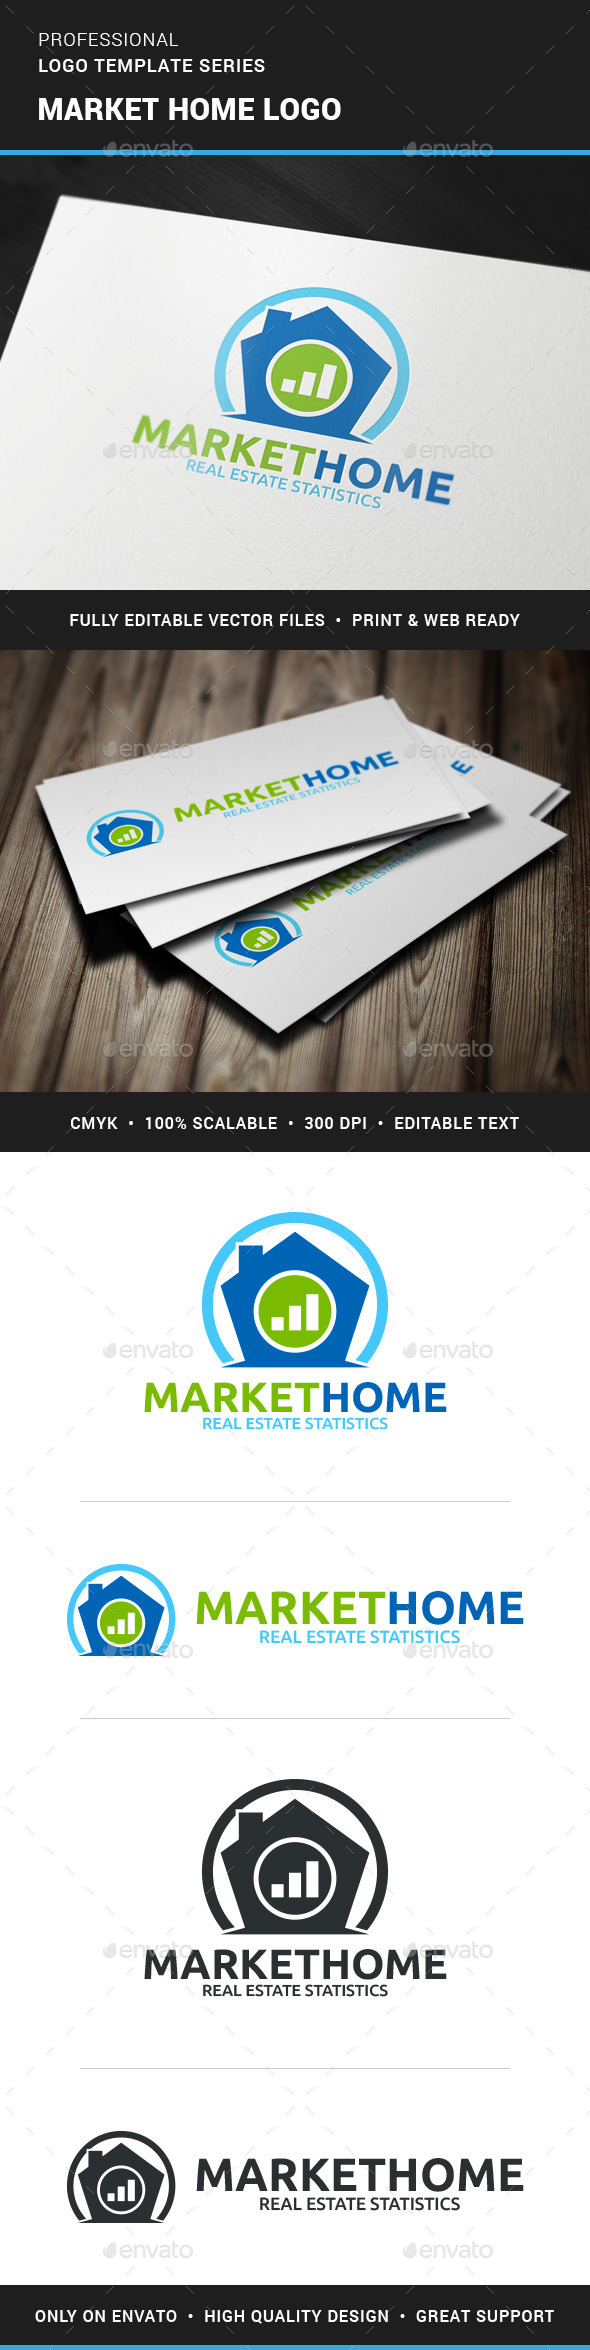 GraphicRiver Marketing Home Logo Template 11767237